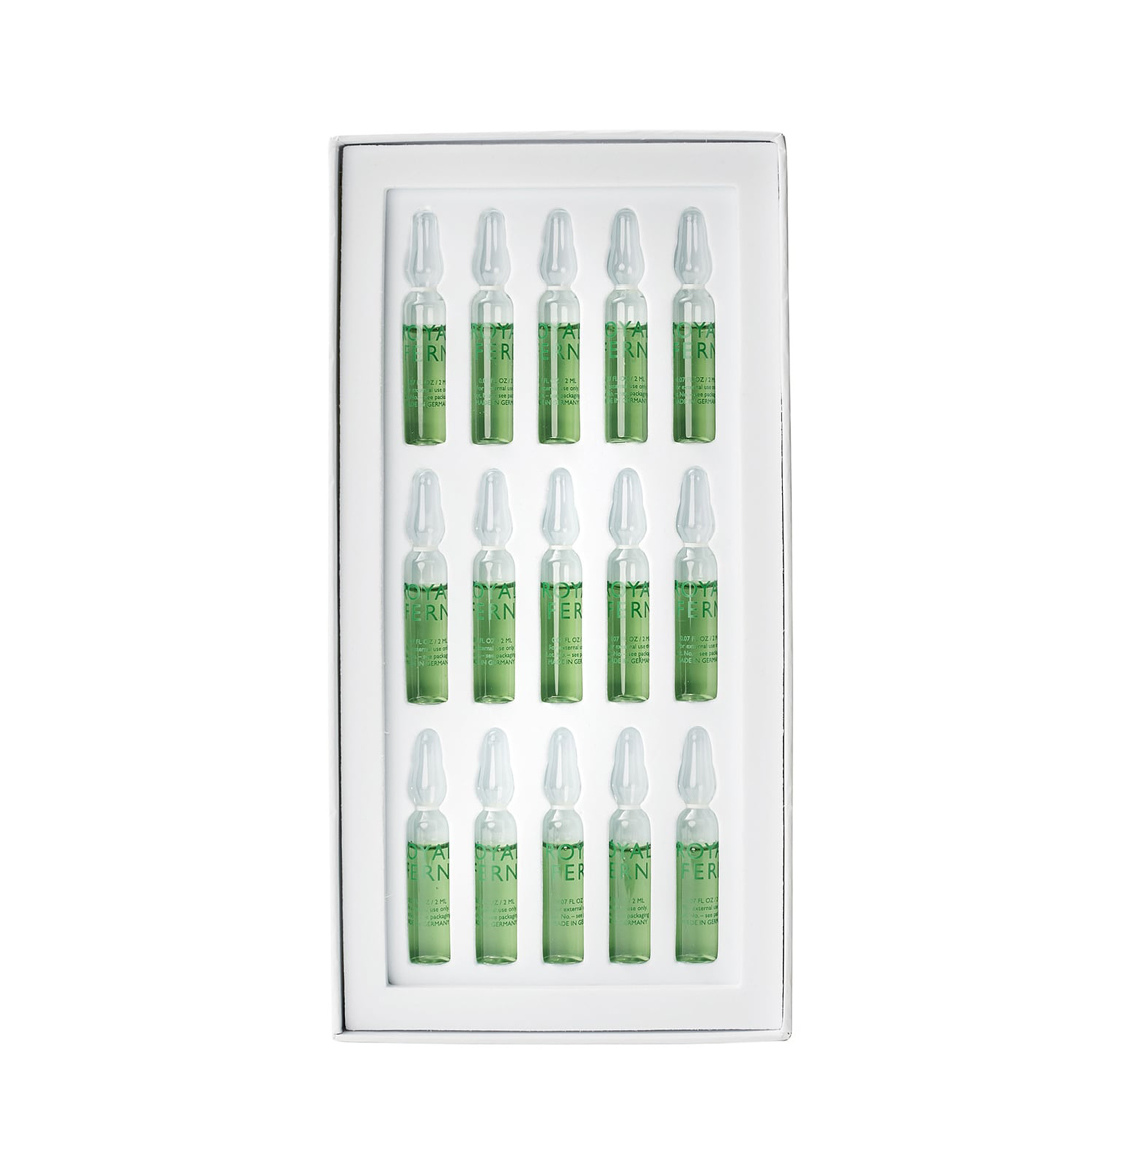 Royal Fern Phytoactive Illuminating Ampoules 15 x 2ml